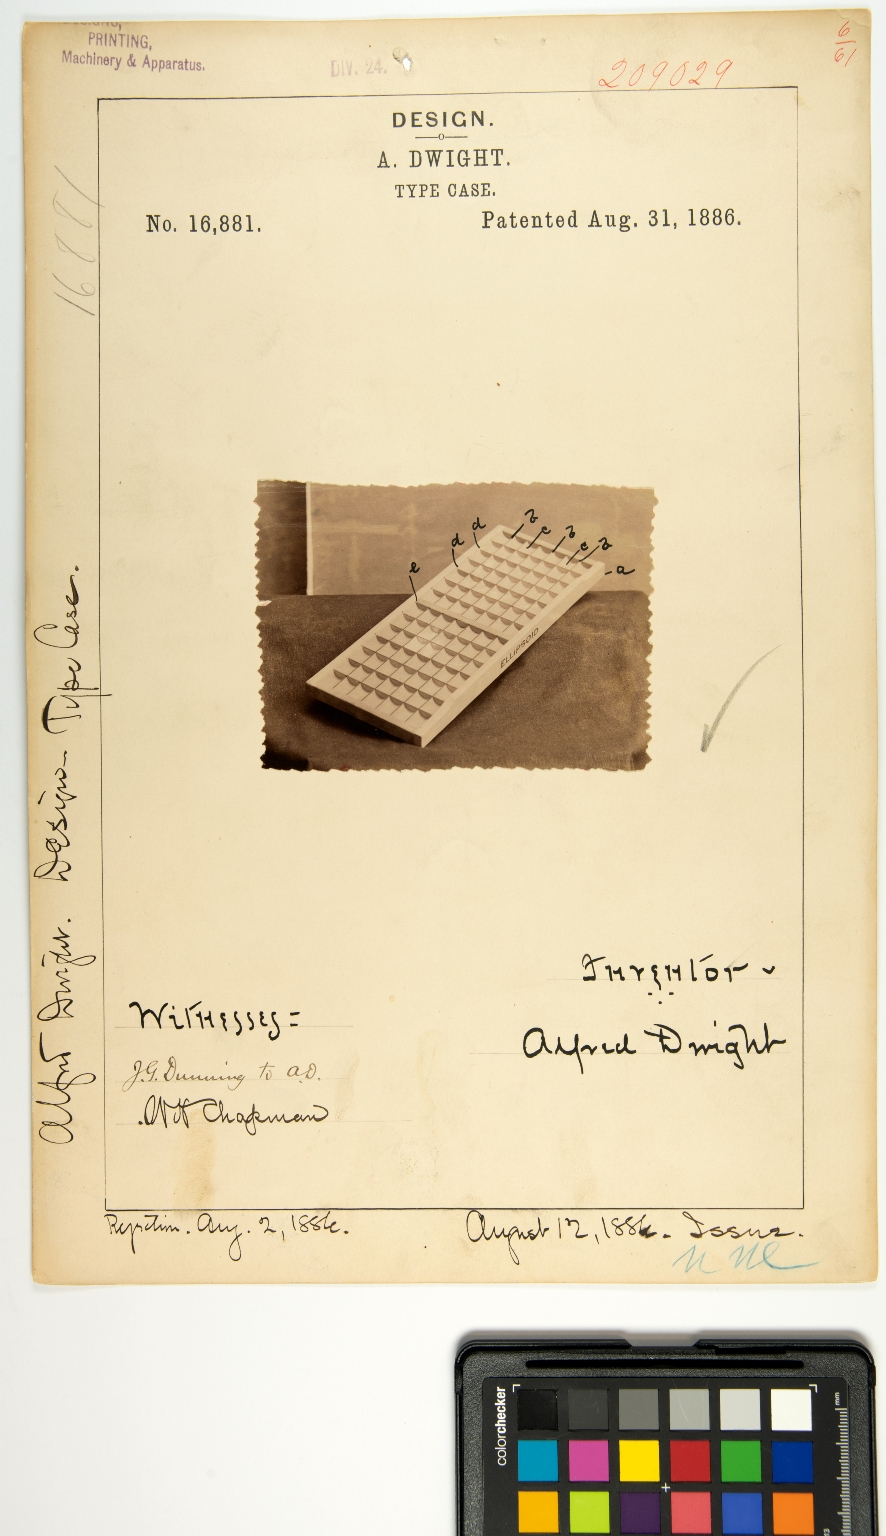 A. Dwight, Type Case